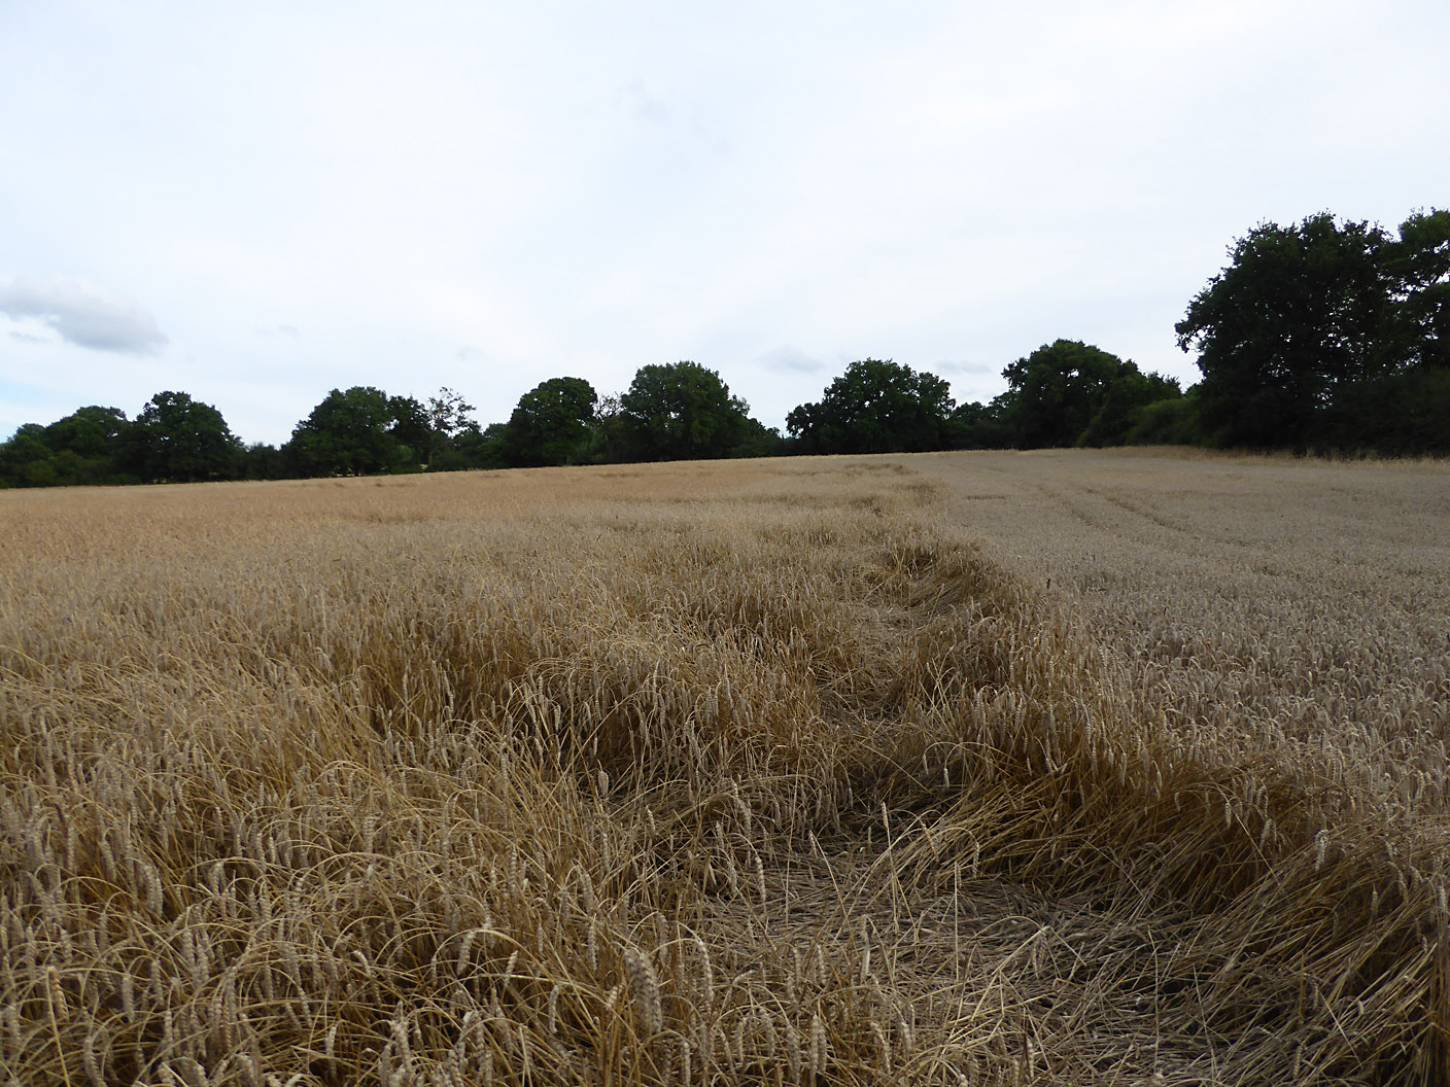 some lodging on Ble de Haie, next to some modern Nelson on right, farm review pre-harvest '17 - 6:31pm&nbsp;1<sup>st</sup>&nbsp;Aug.&nbsp;'17  <a href='http://maps.google.com/?t=h&q=51.209481,-0.086678&z=18&output=embed' target=_blank><img src='http://www.brockwell-bake.org.uk/img/marker.png' style='border:none;vertical-align:top' height=16px></a>